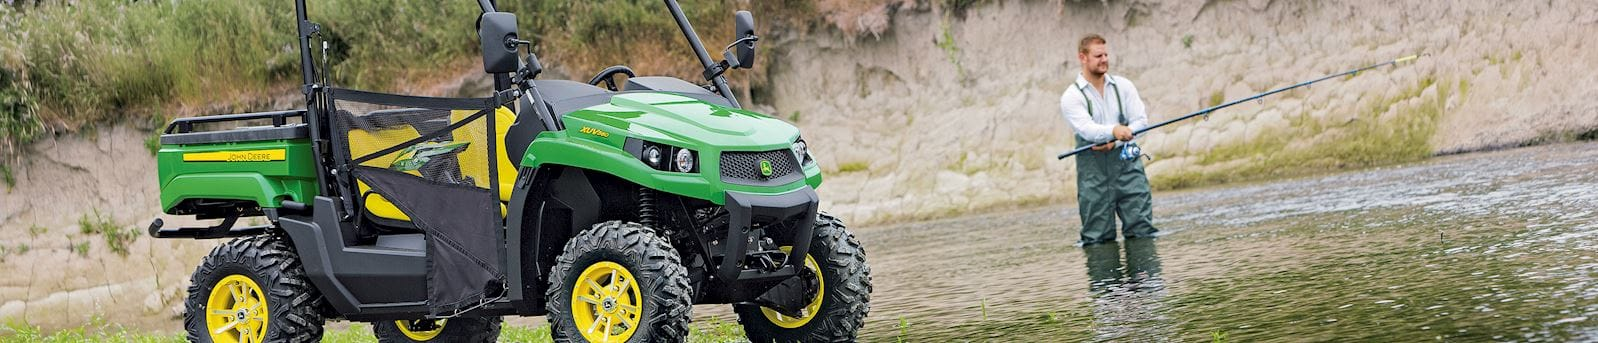 John Deere Gator Utility Vehicle Special Offers